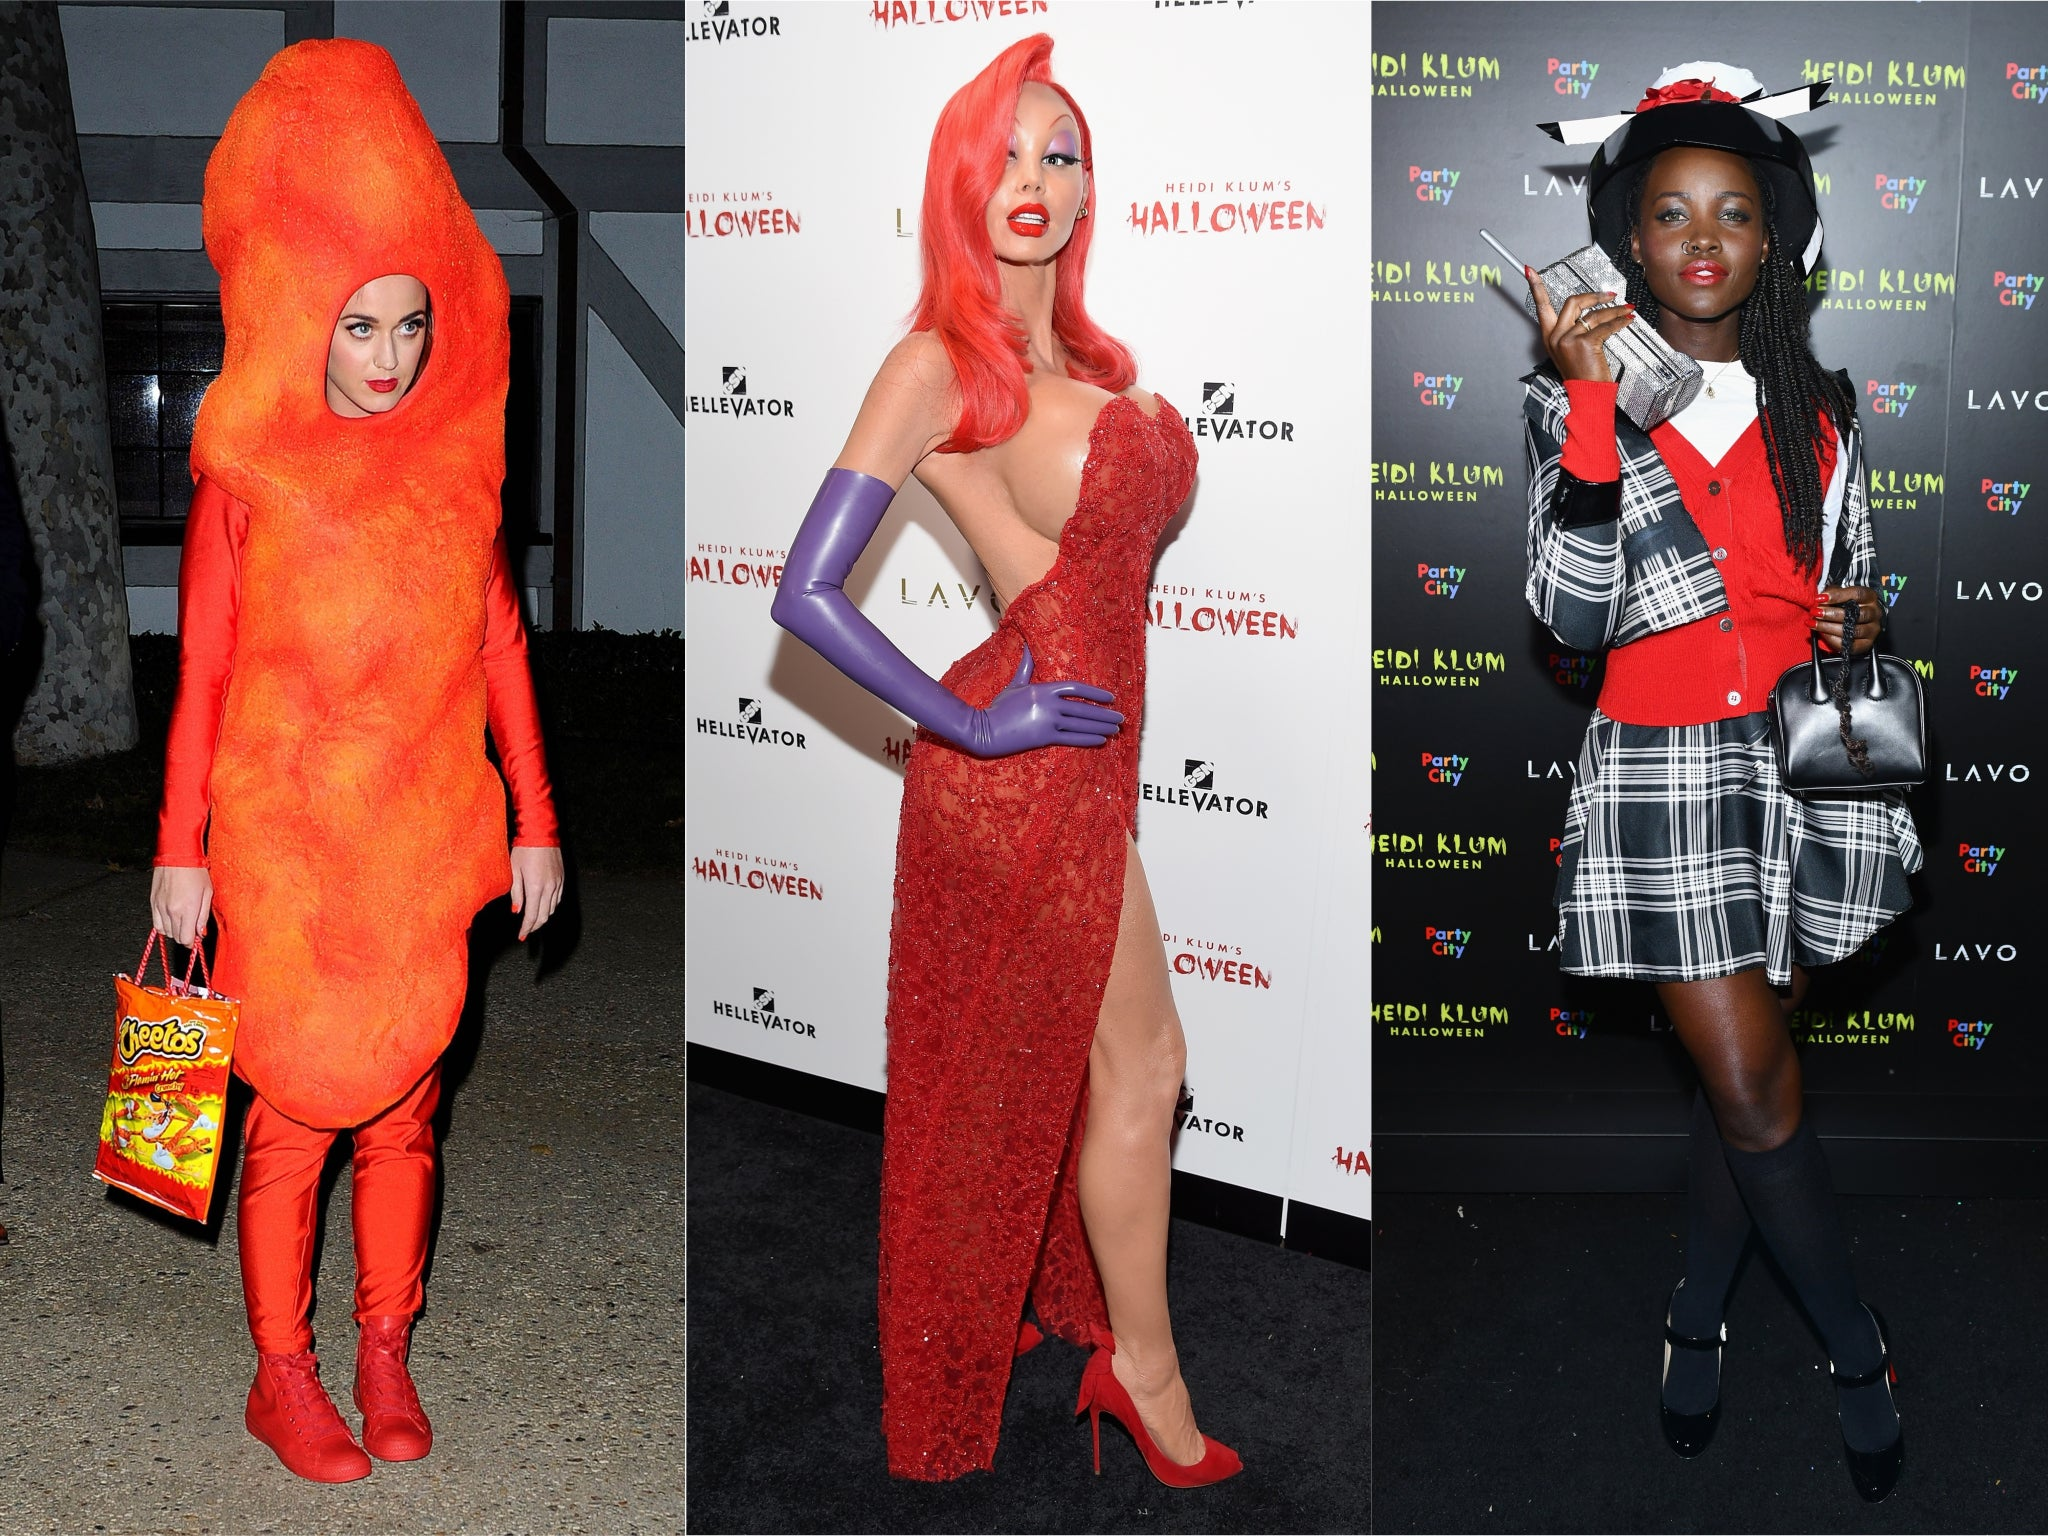 The best celebrity Halloween costumes of all time, from Heidi Klum as Jessica Rabbit to Katy Perry as Hillary Clinton